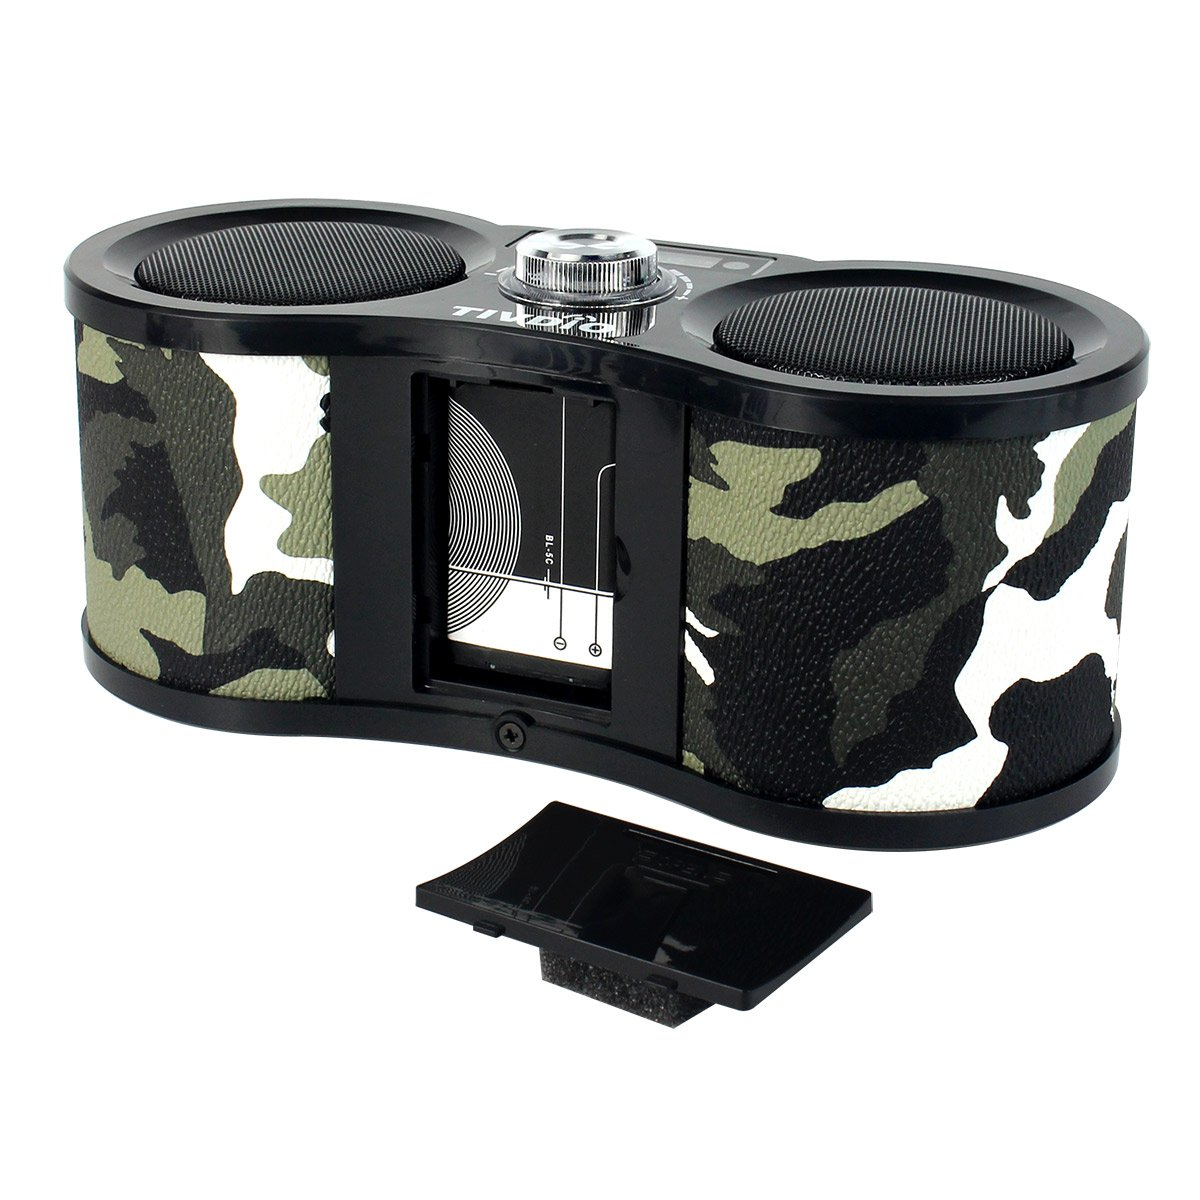 TIVDIO V-113 Portable Transistor FM Stereo Radio Support Mp3 Music Player Speaker Micro SD IF Card Aux Line In Remote(Camouflage) by TIVDIO (Image #4)